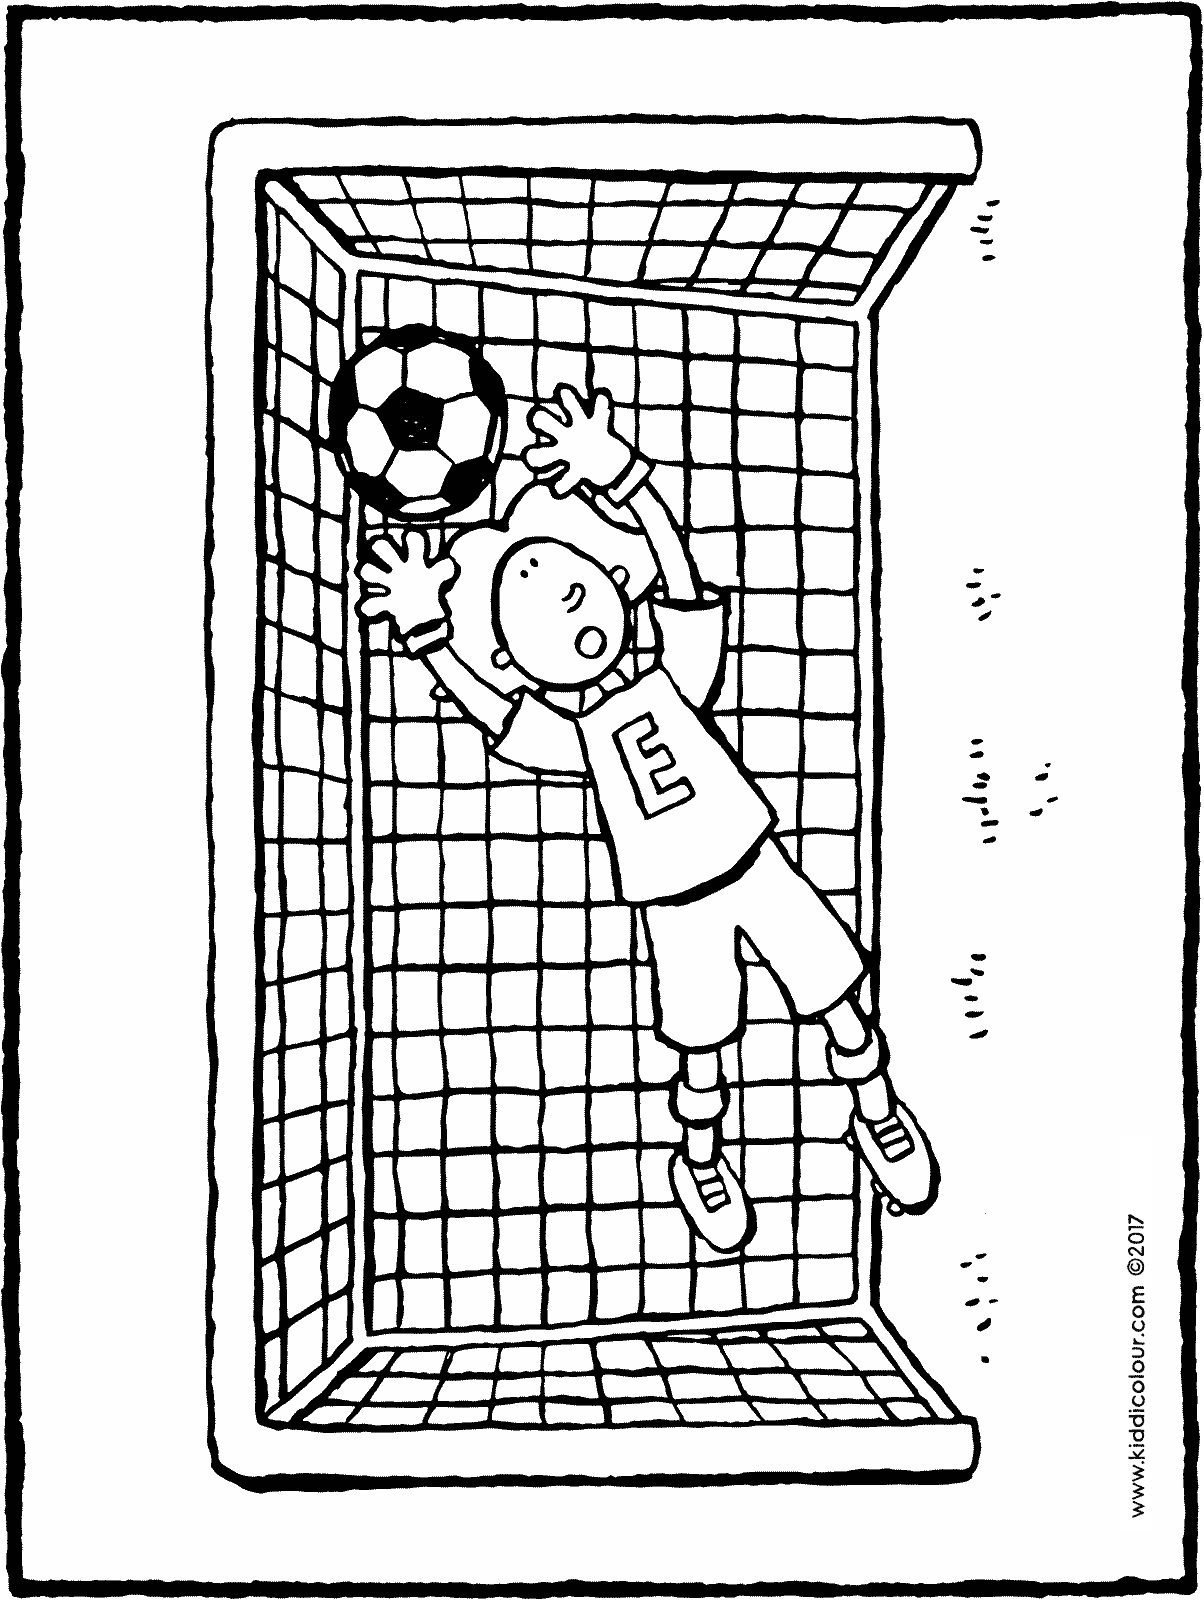 Emma in goal colouring page 01H